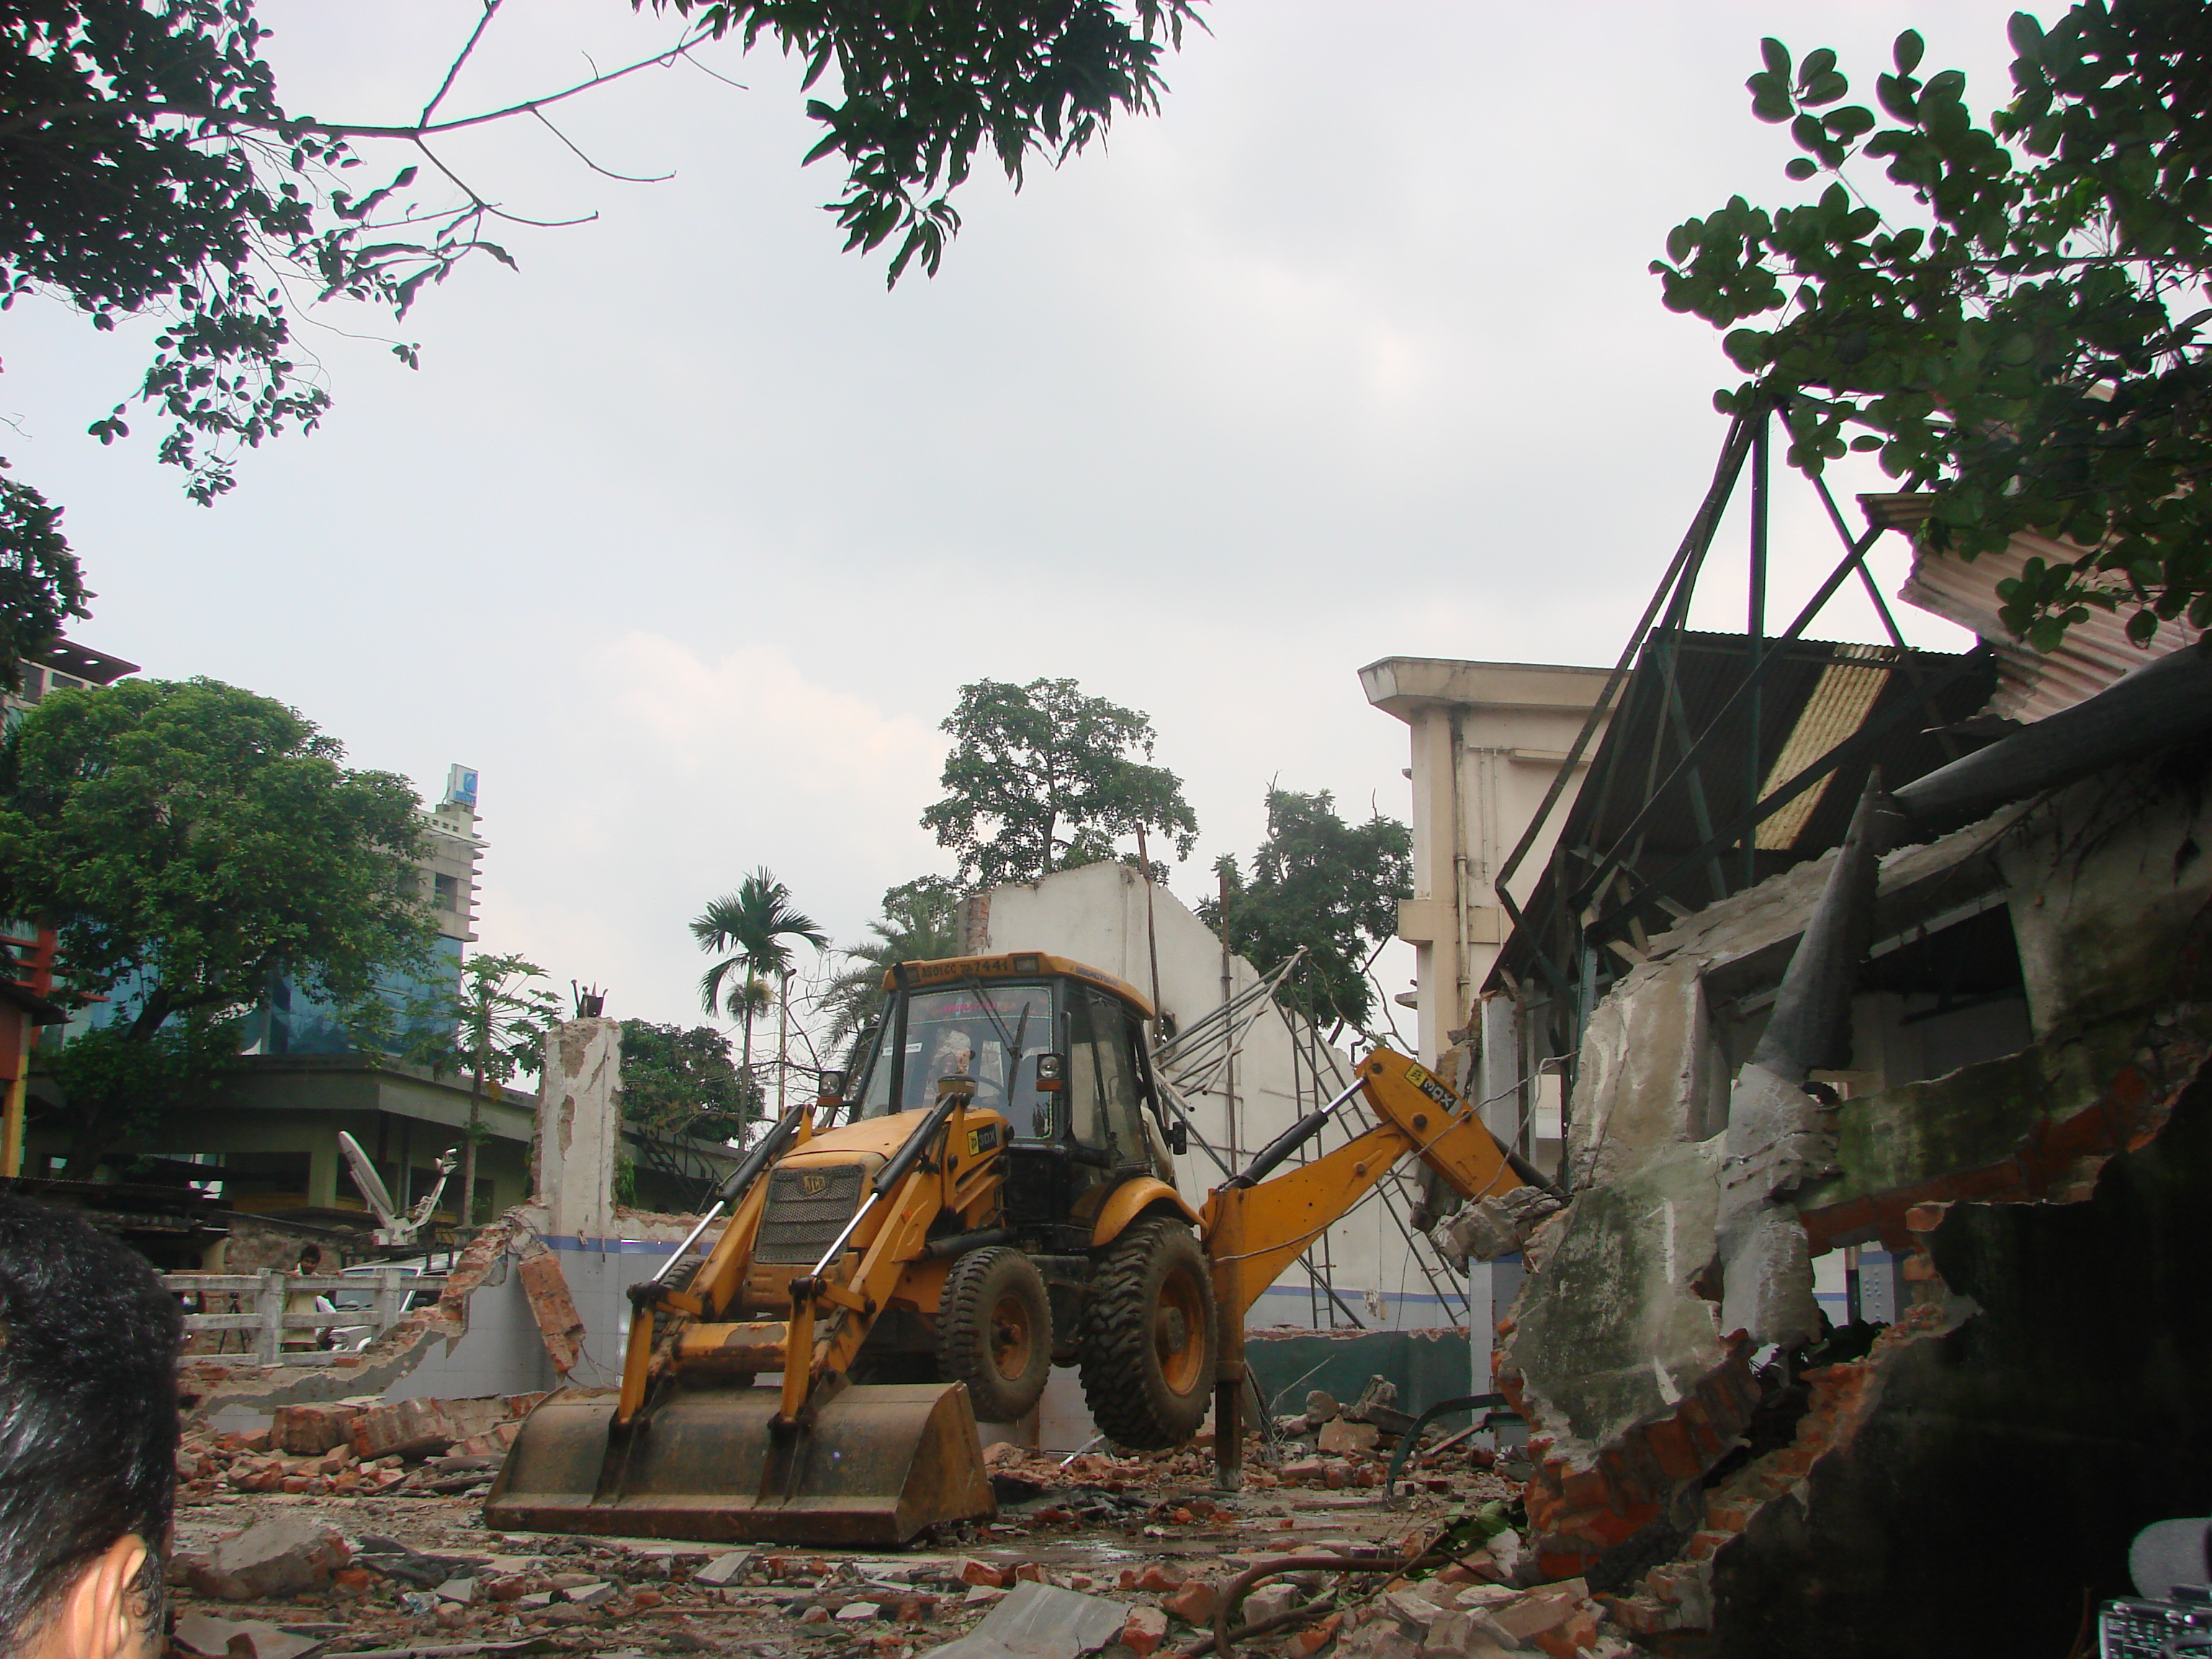 Action against Illegal Encroachment in Guwahati